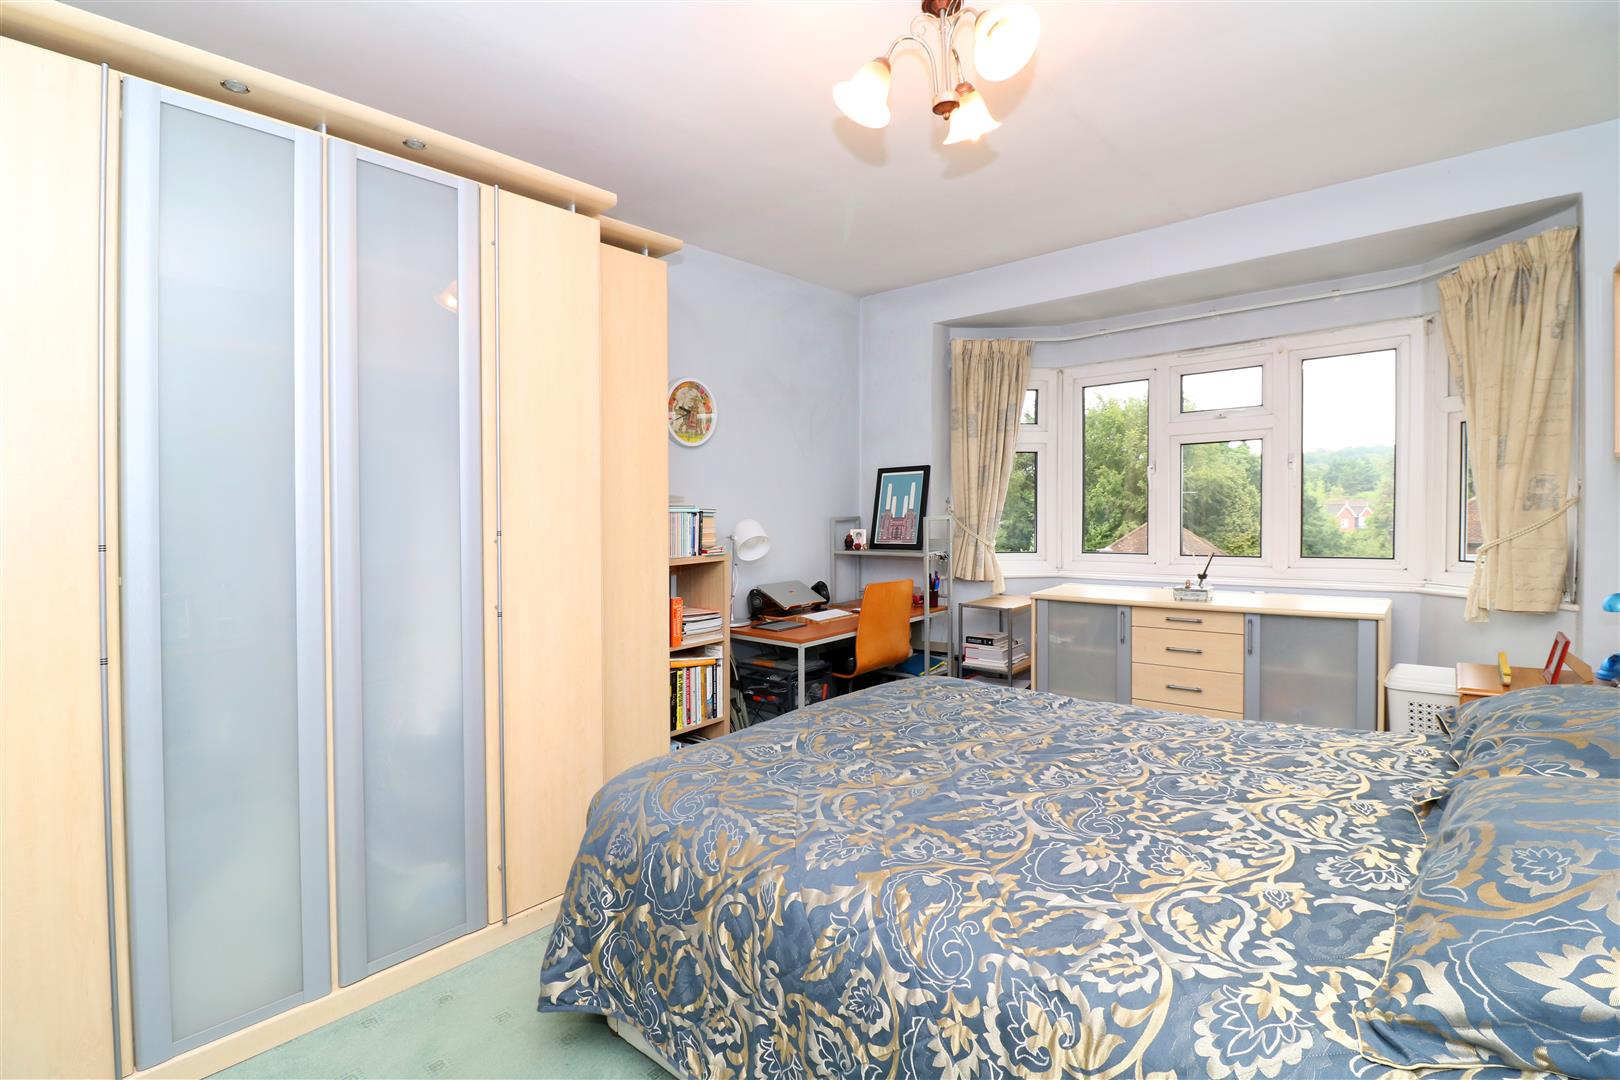 4 bed House for sale in Links Drive, Radlett - (Property Image 11)